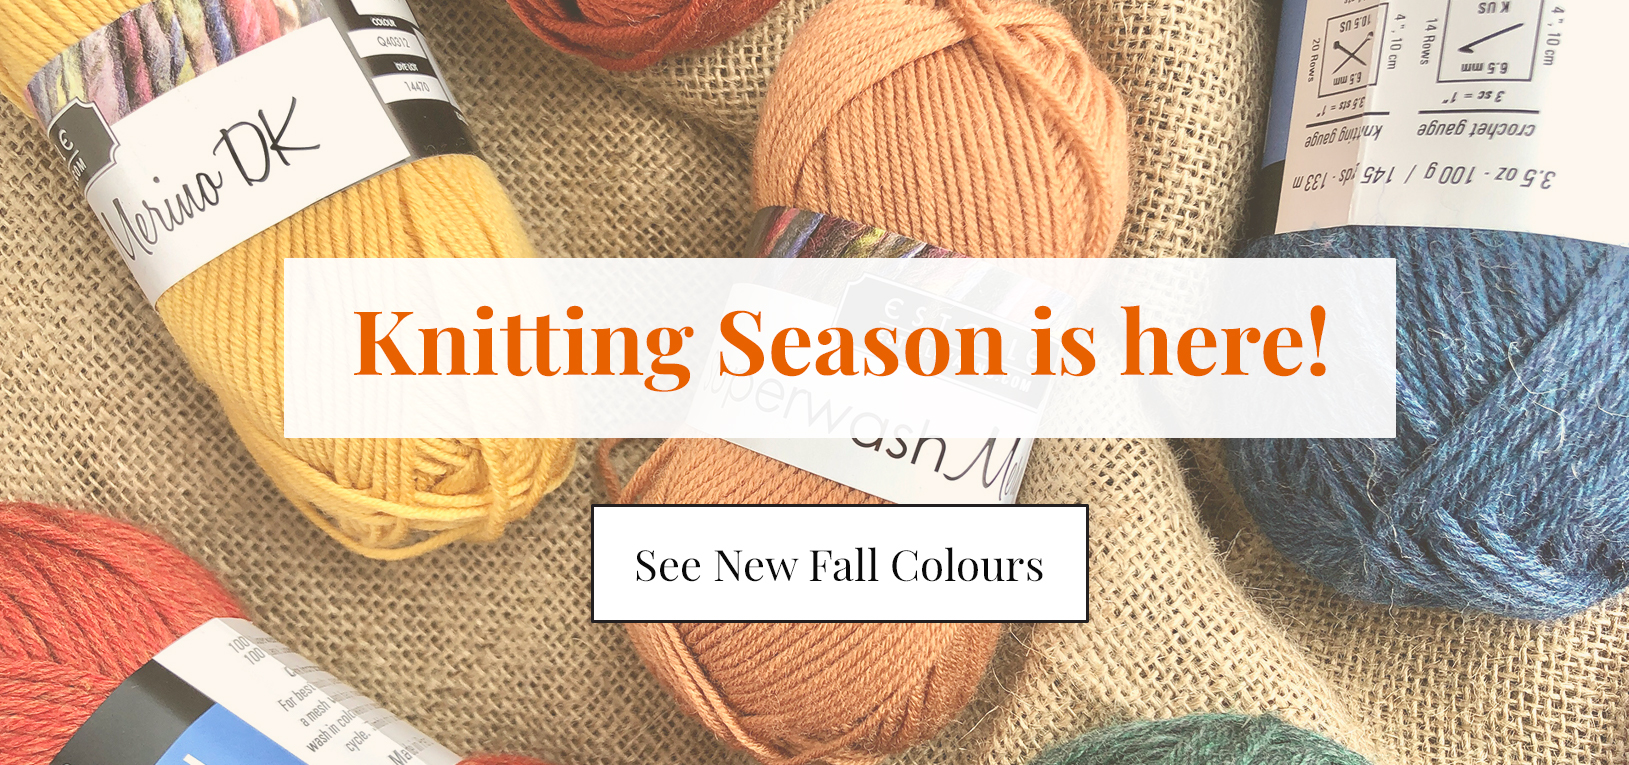 Knitting season is here! Knitting Season is here! Shop new fall colours and products